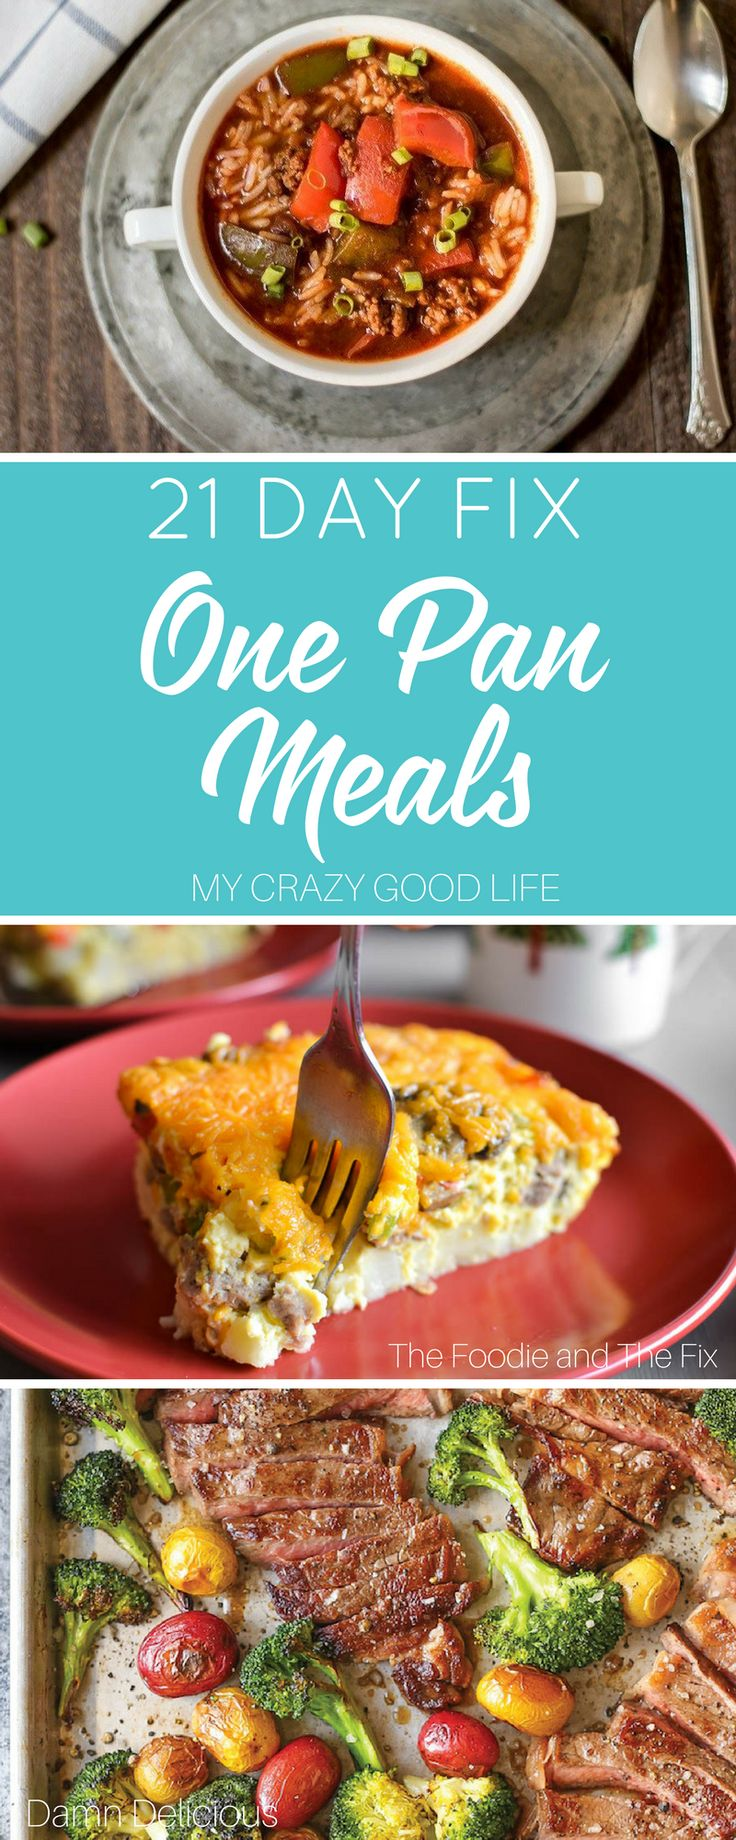 21 Day Fix One Pan Meals